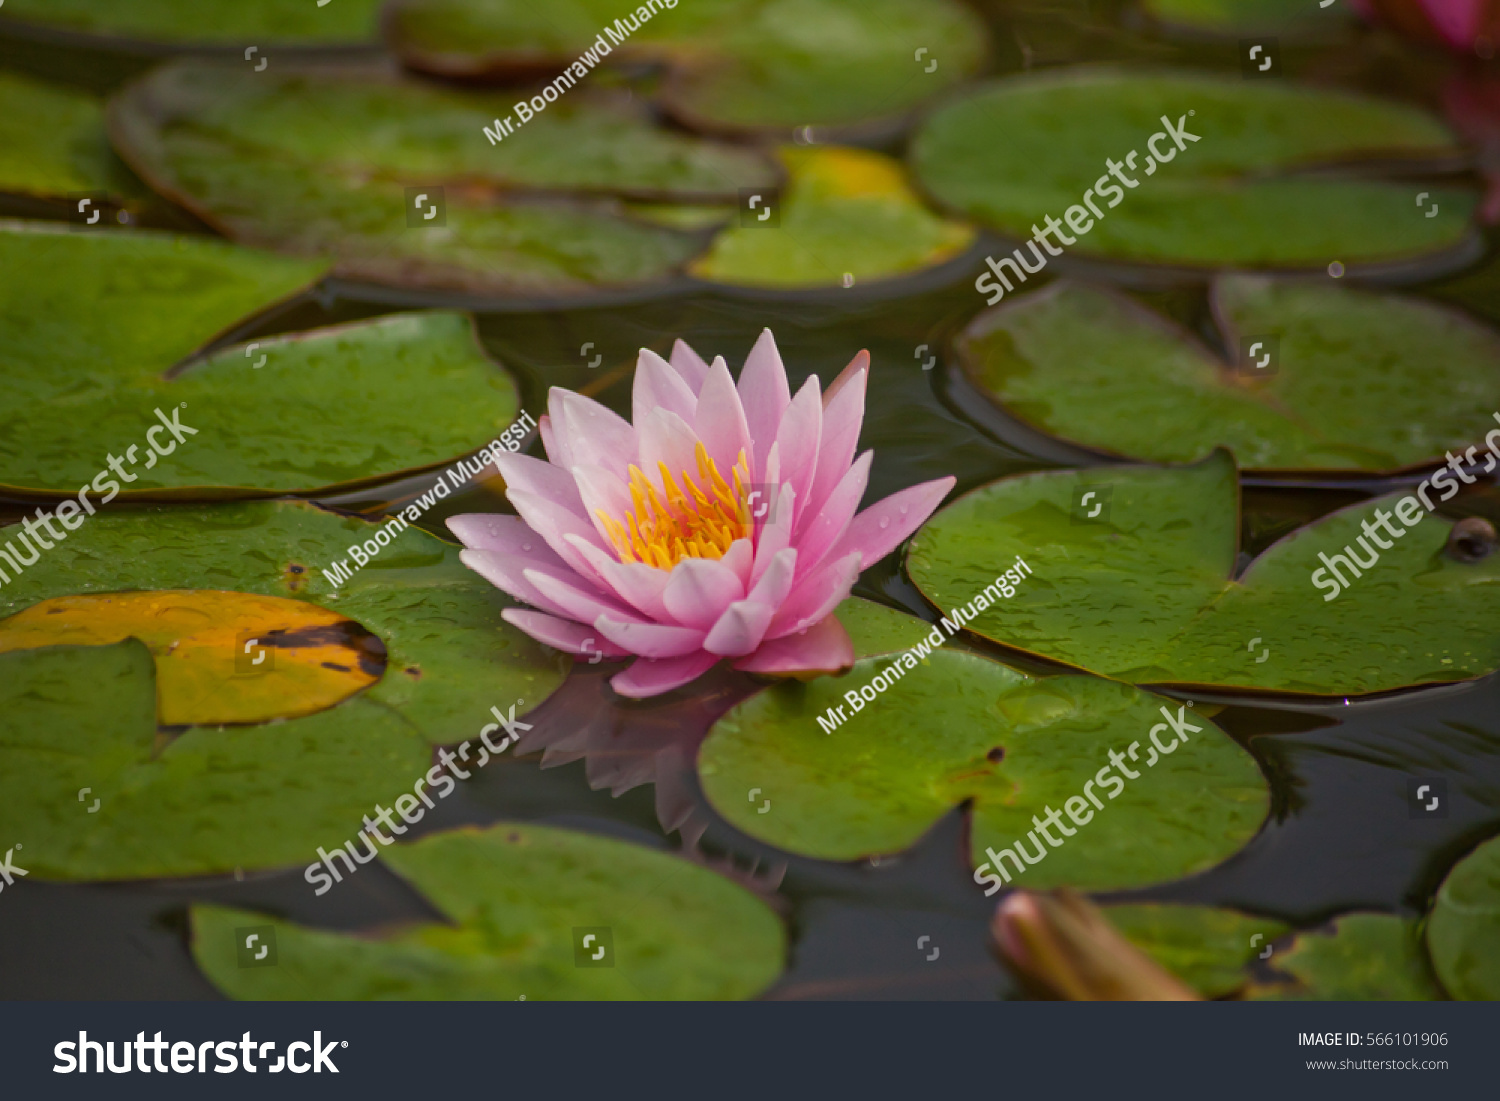 Single pink lotus or water lily flowers at the gardens ez canvas id 566101906 izmirmasajfo